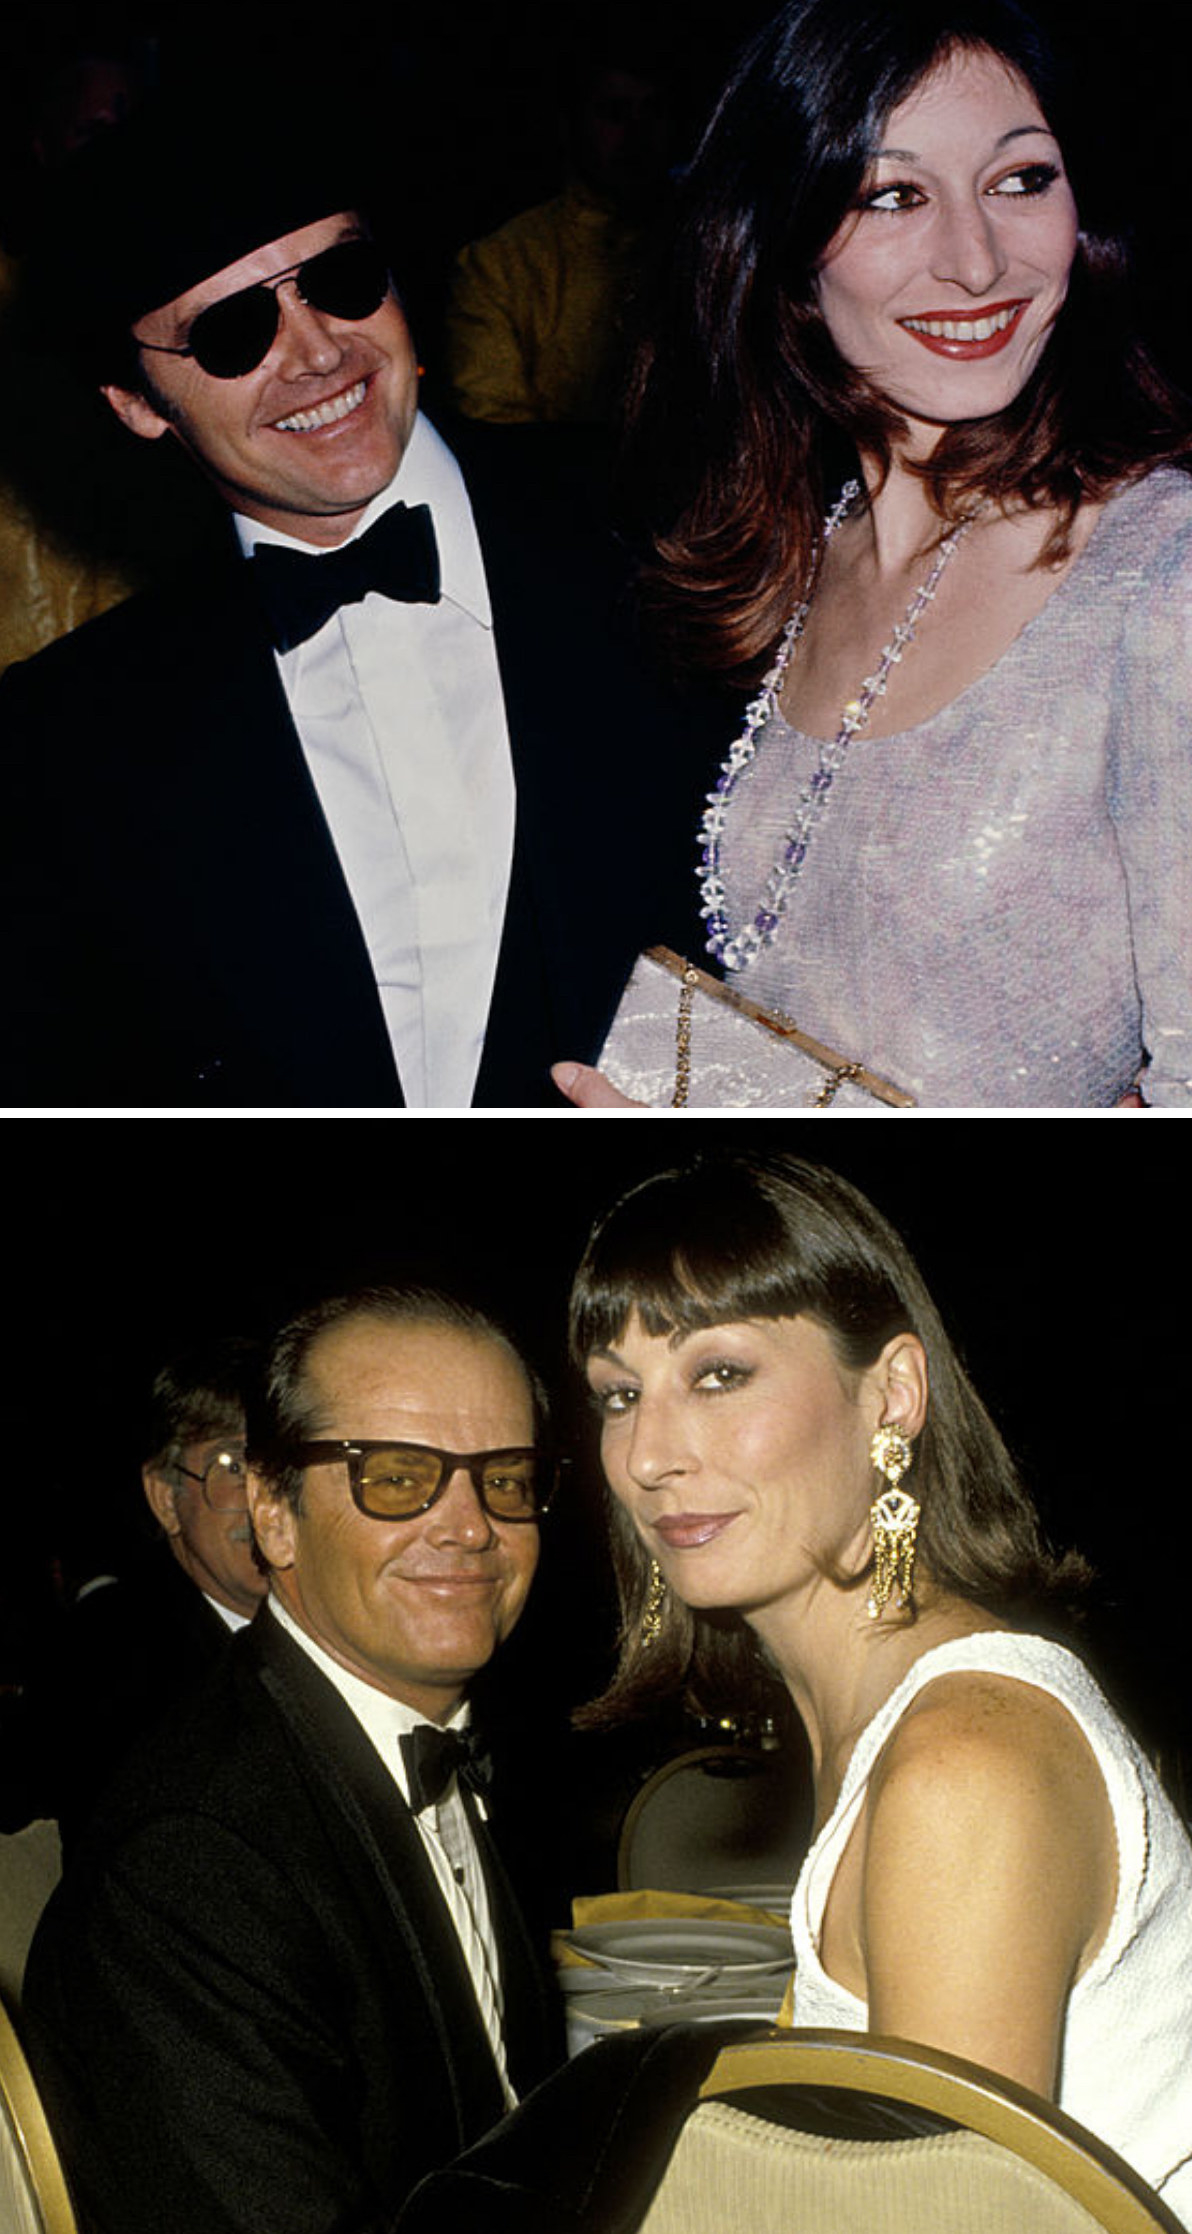 Nicholson and Huston at an event in LA in 1975; Nicholson and Huston at theDirectors Guild of America Awards in 1986